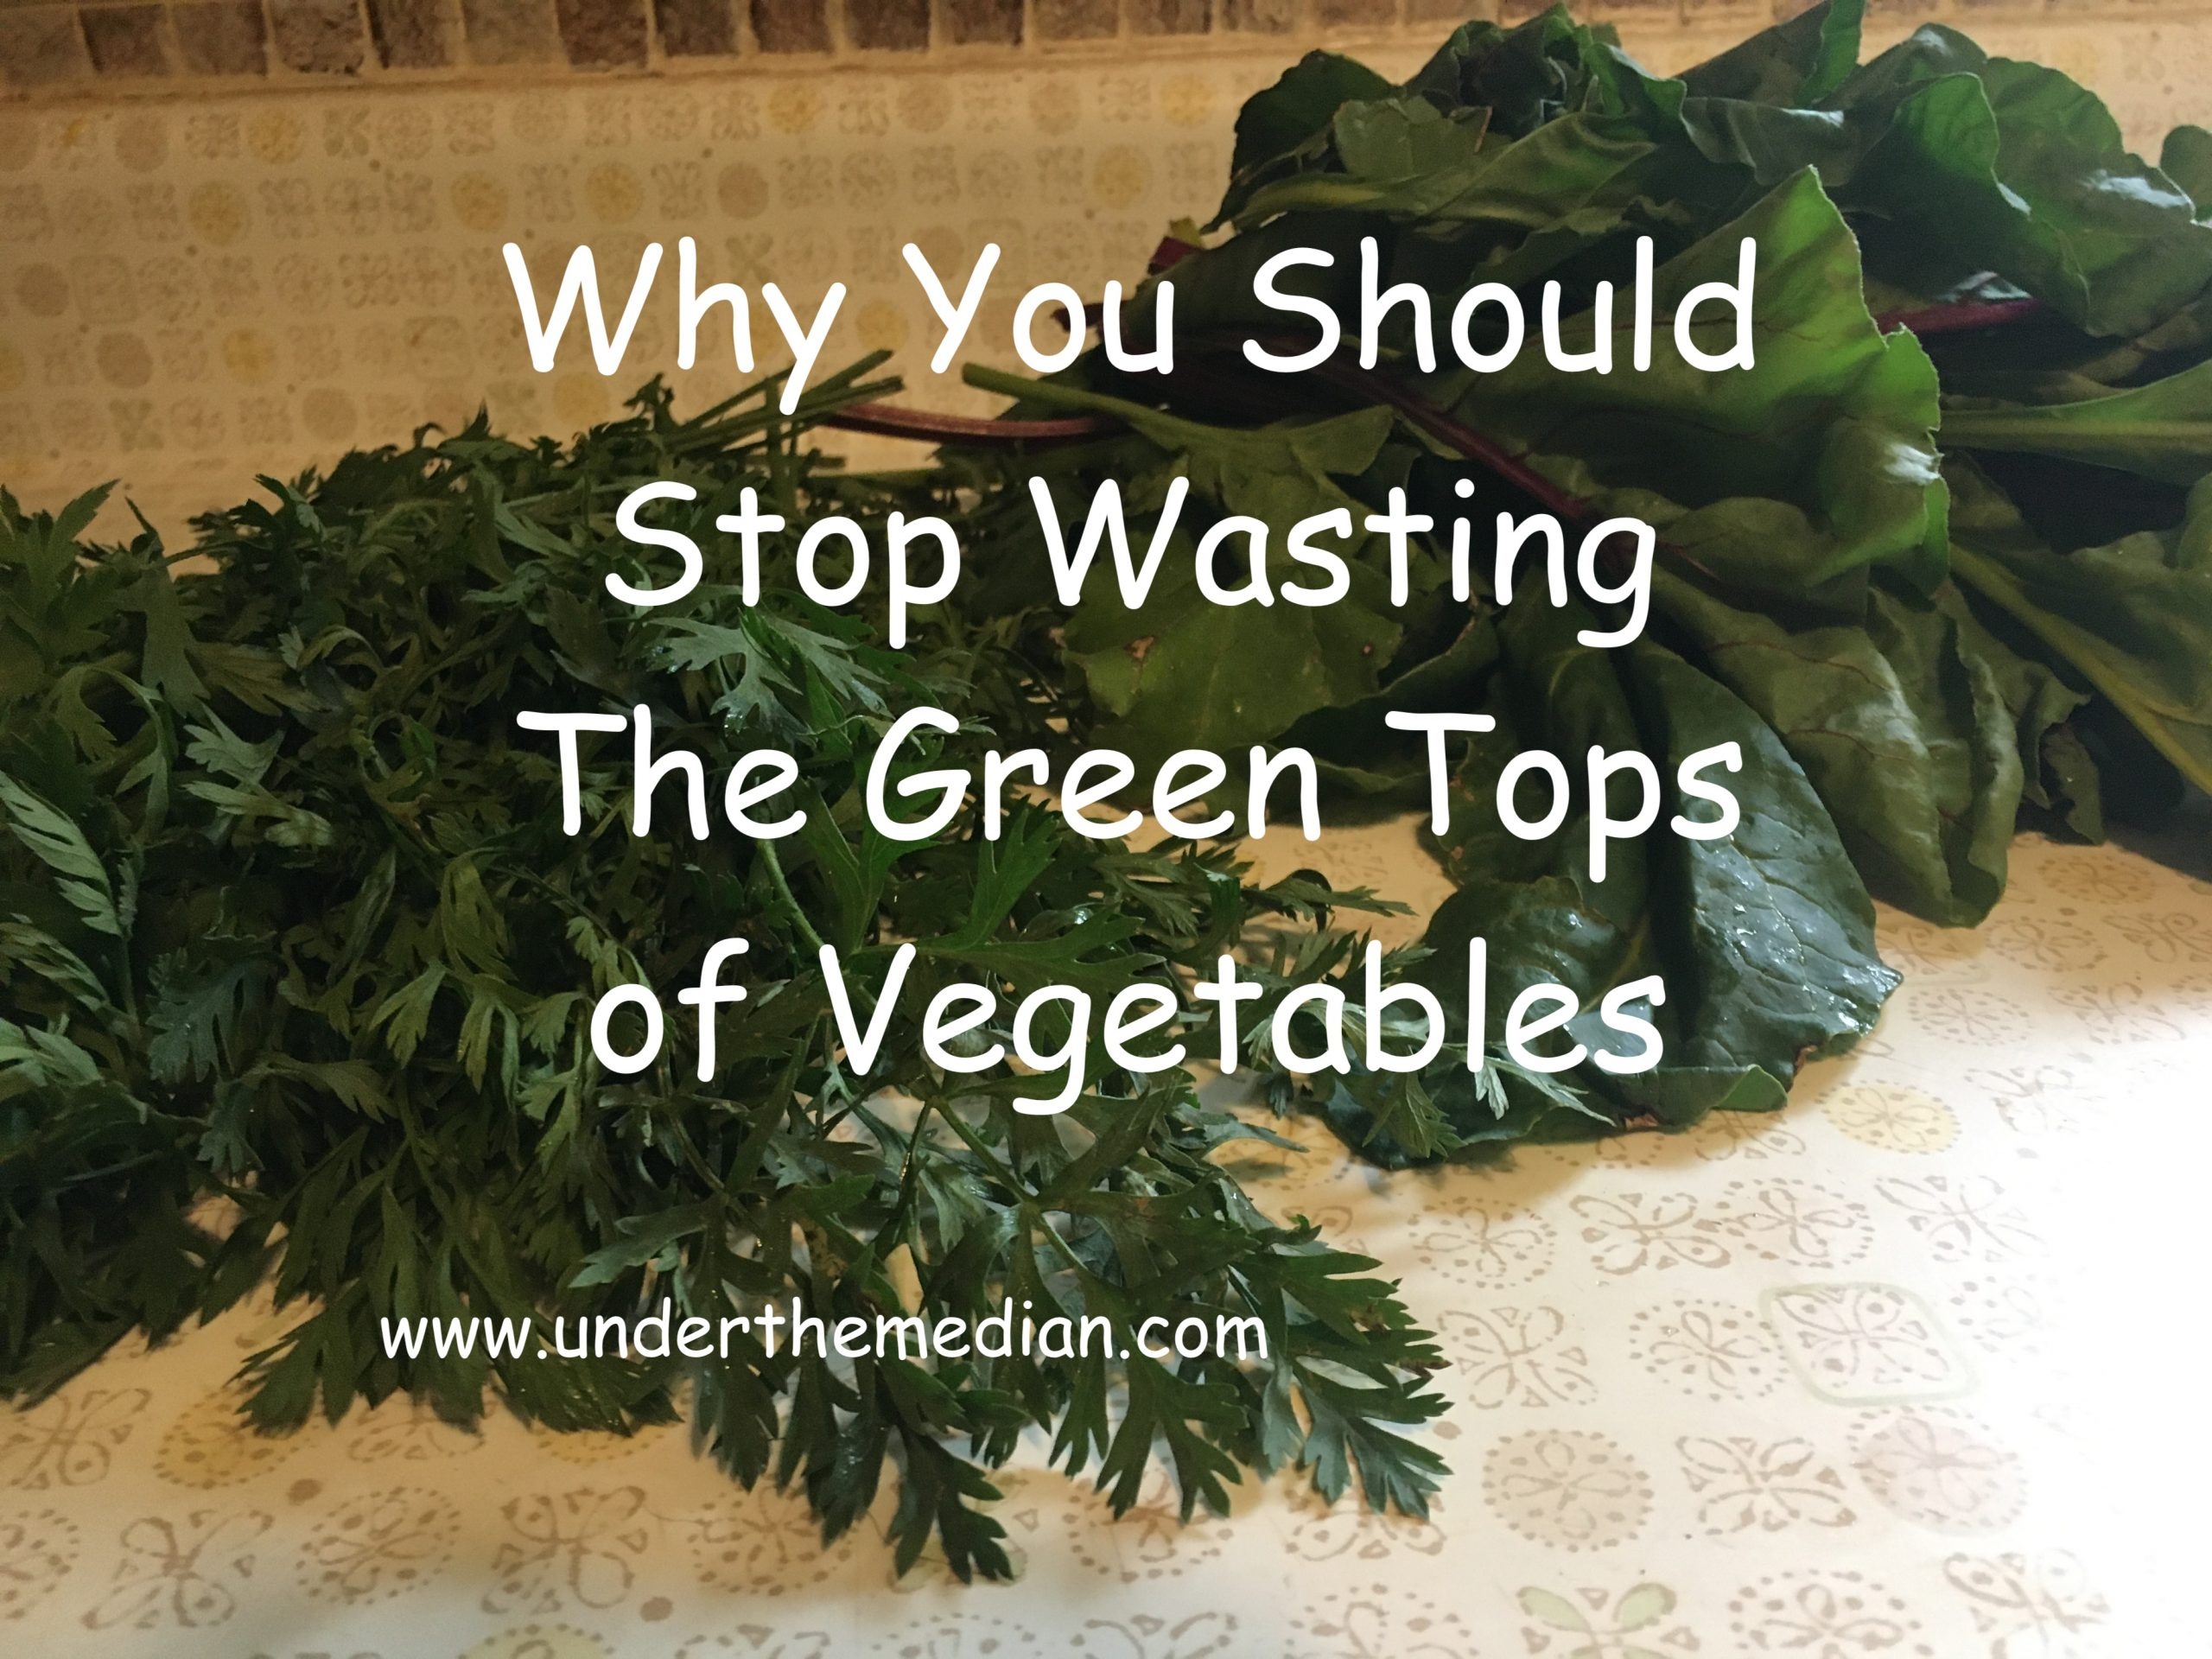 Why You Should Stop Wasting the Green Tops of Vegetables